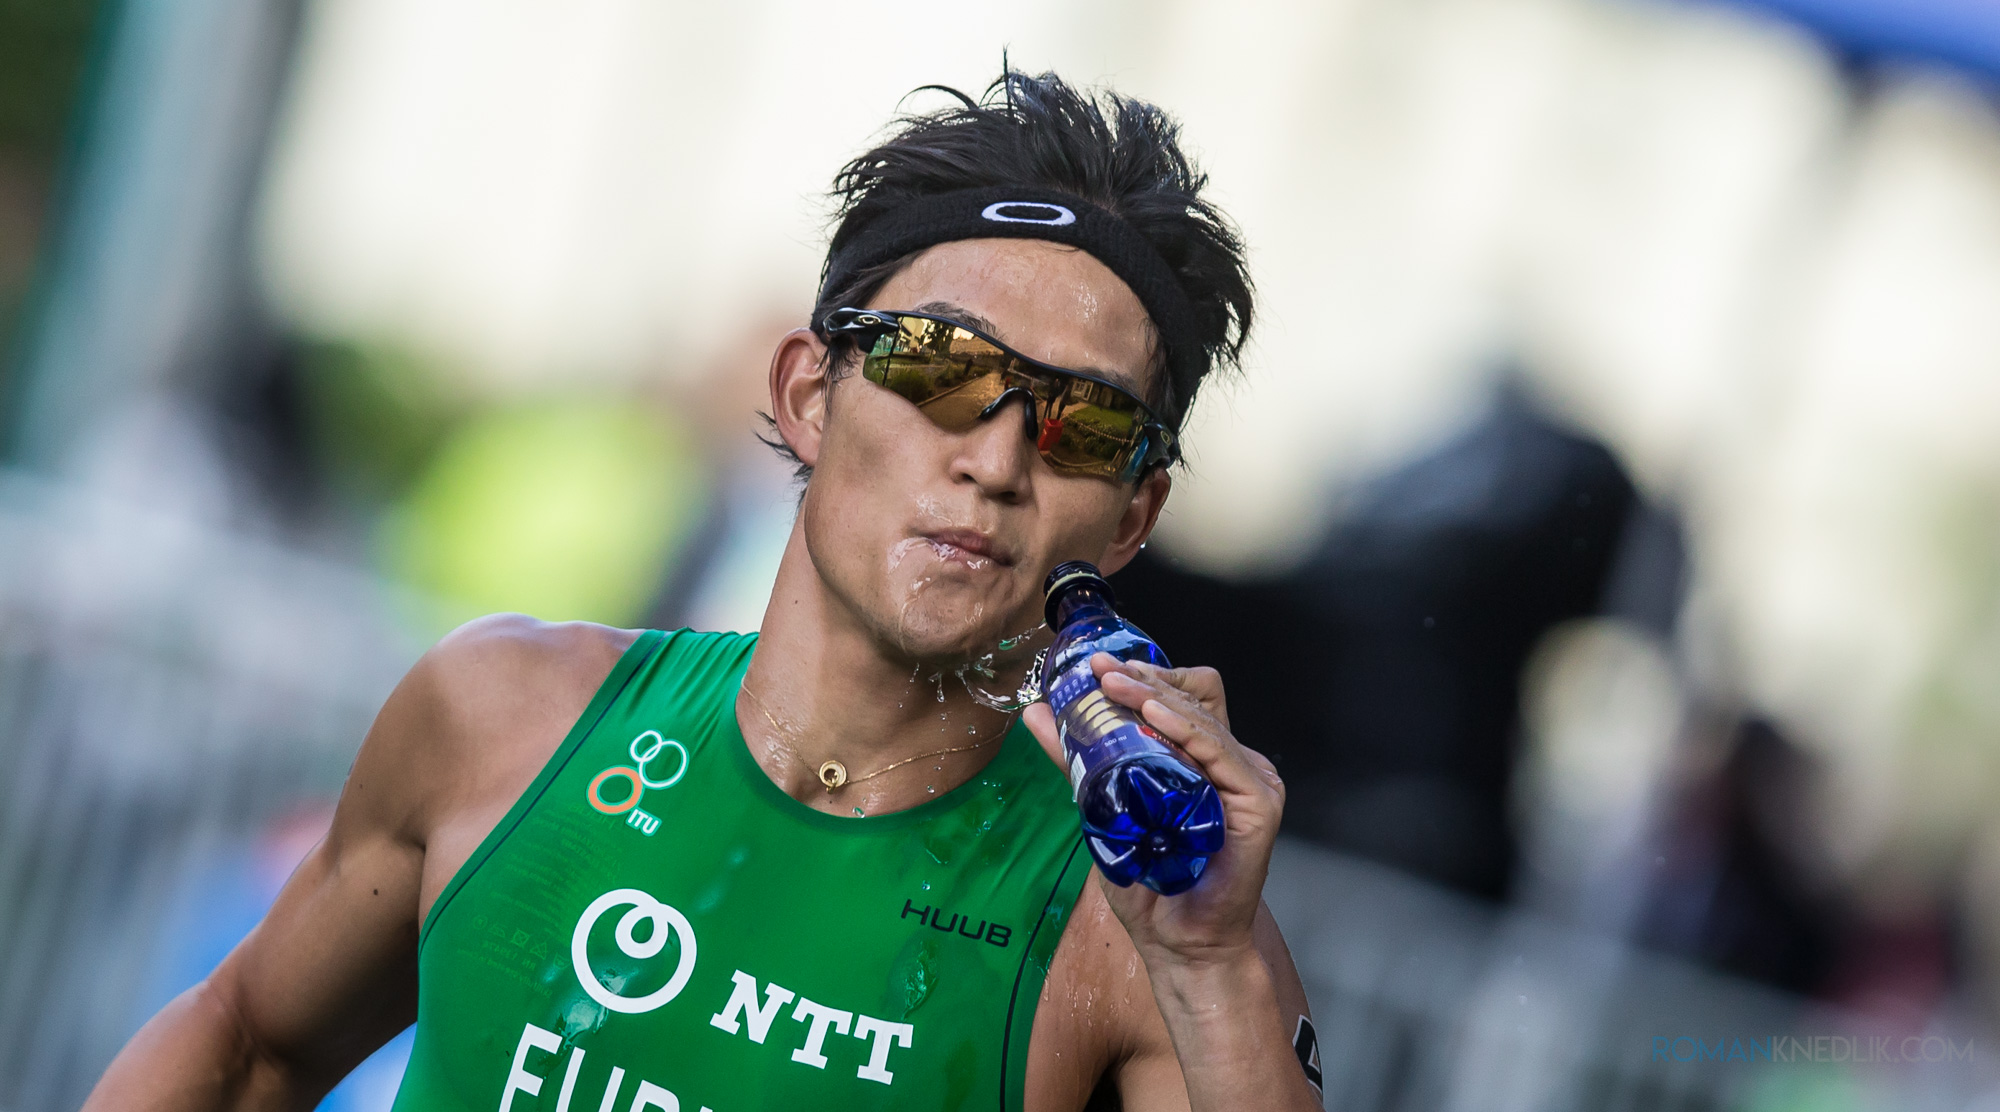 ICU_World_Cup_Triathlon_KV-46